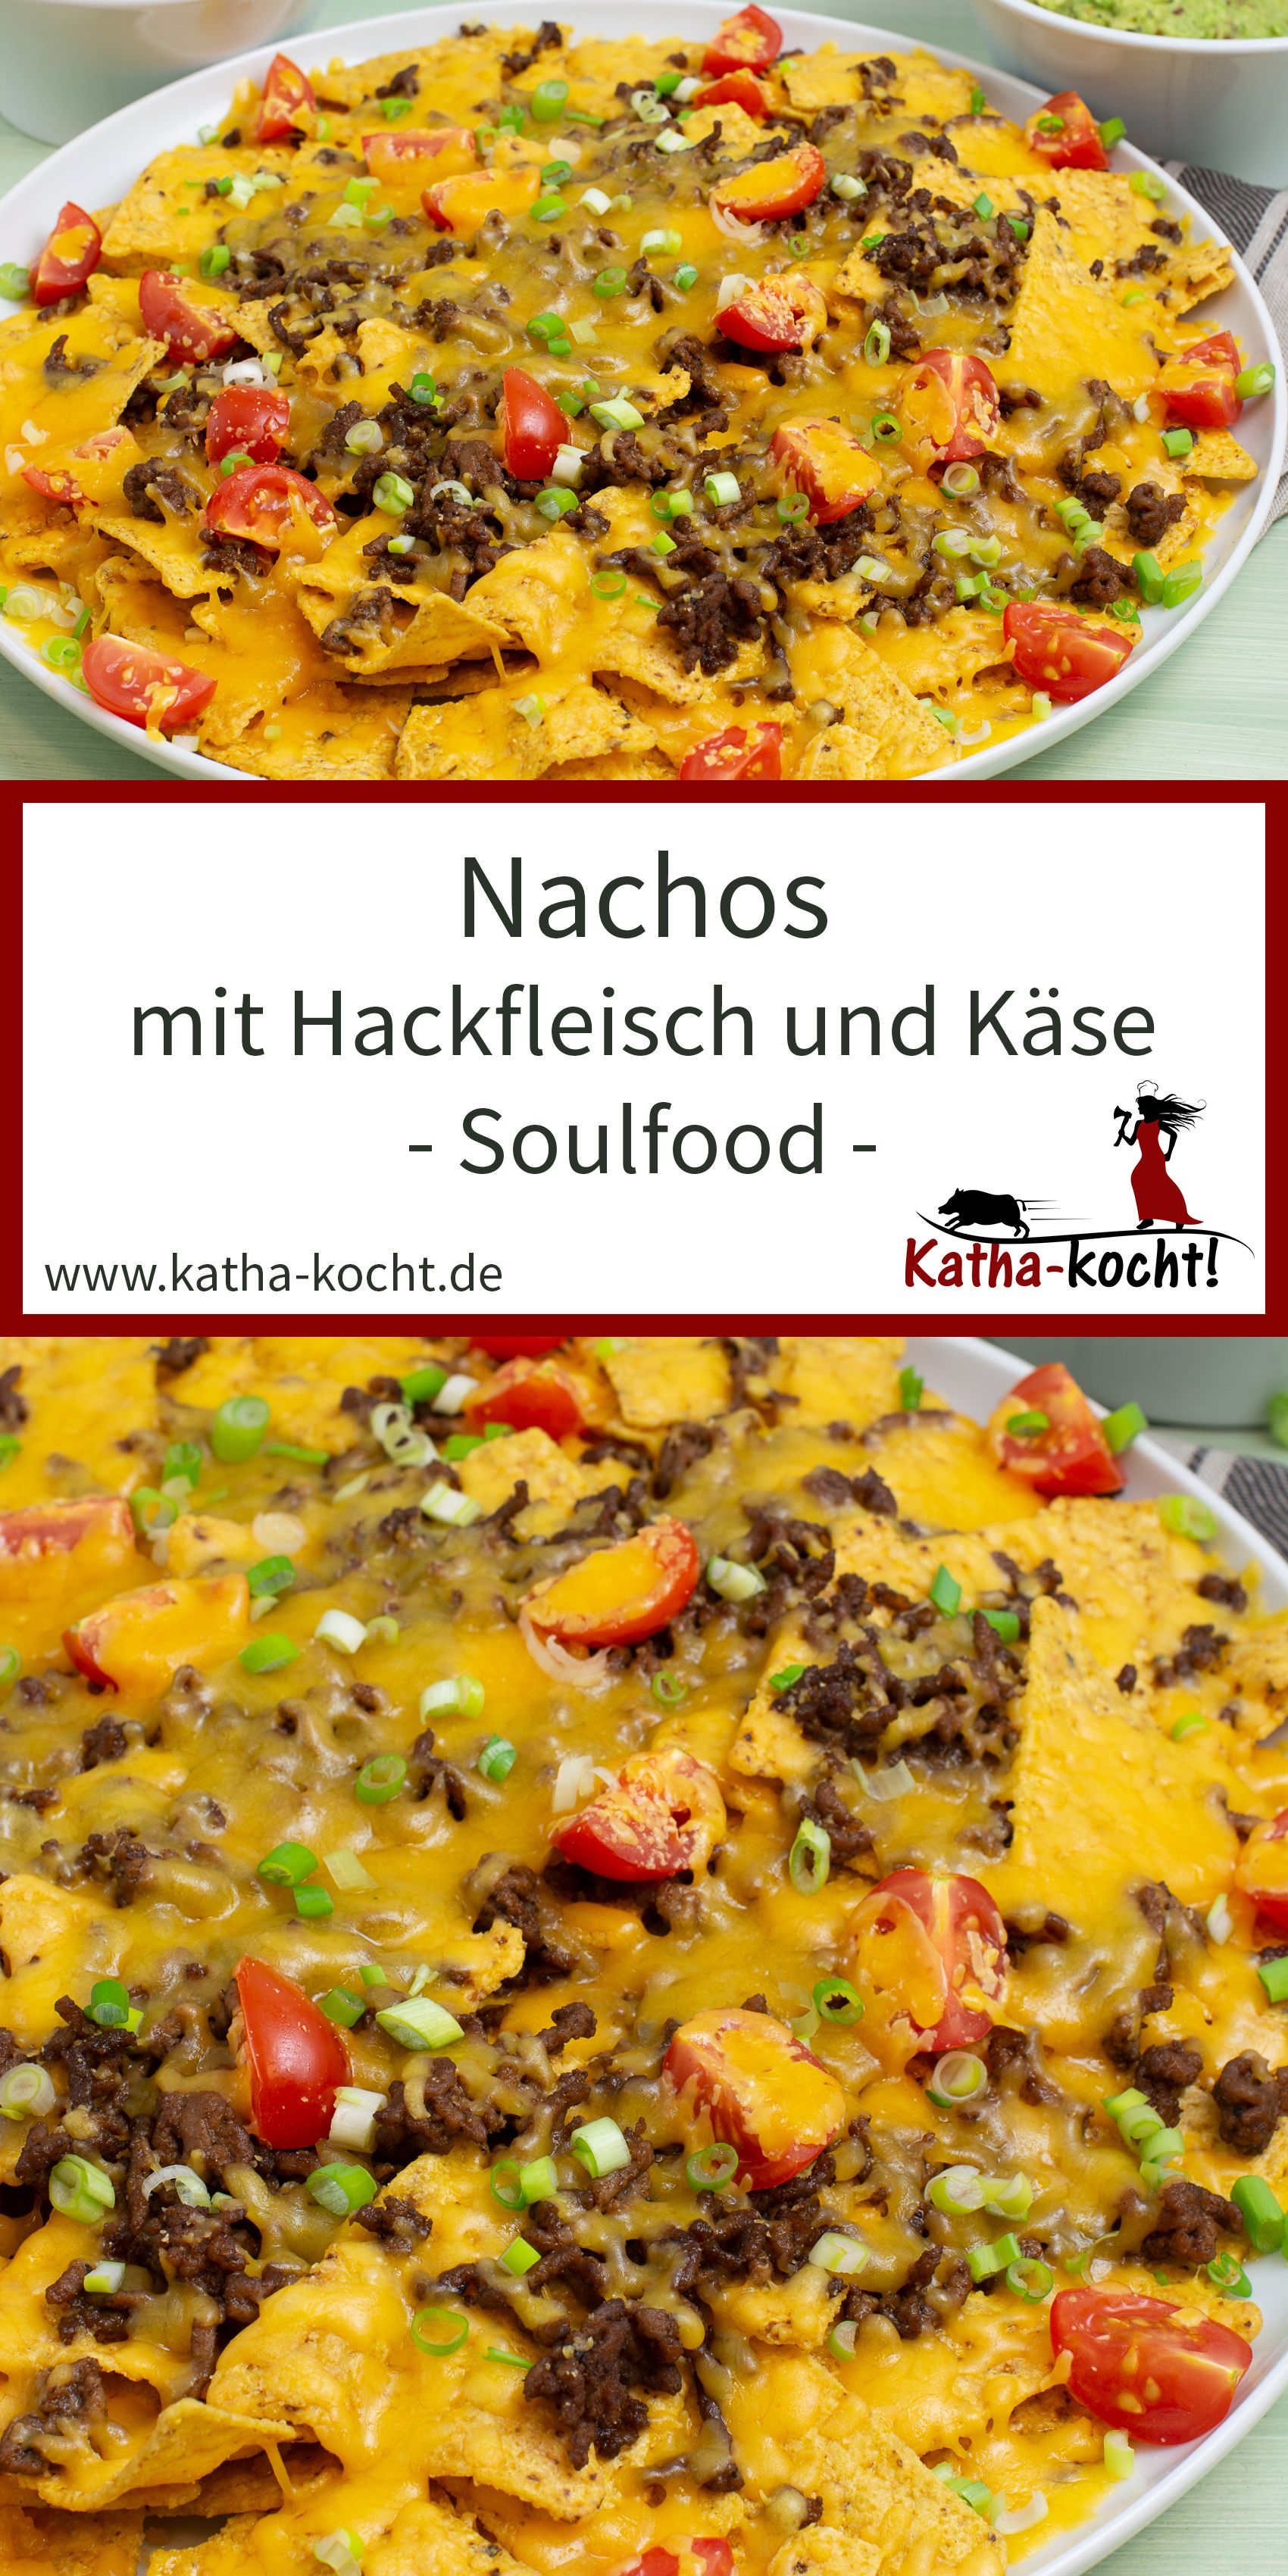 Photo of Nachos with minced meat and cheese